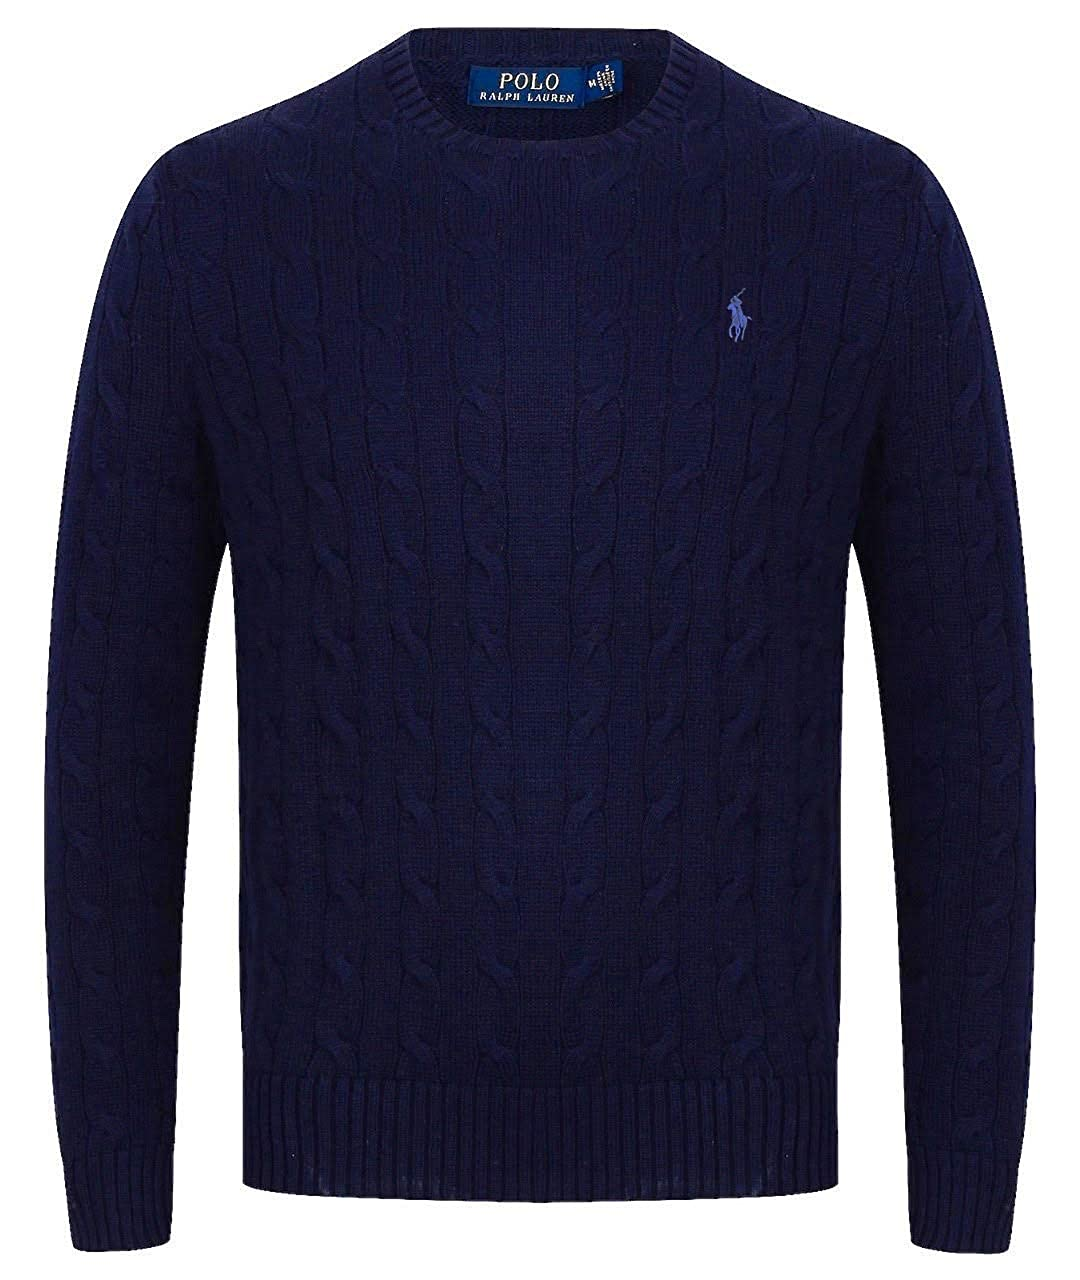 Ralph Lauren Cable Knit Crew Neck Jumper